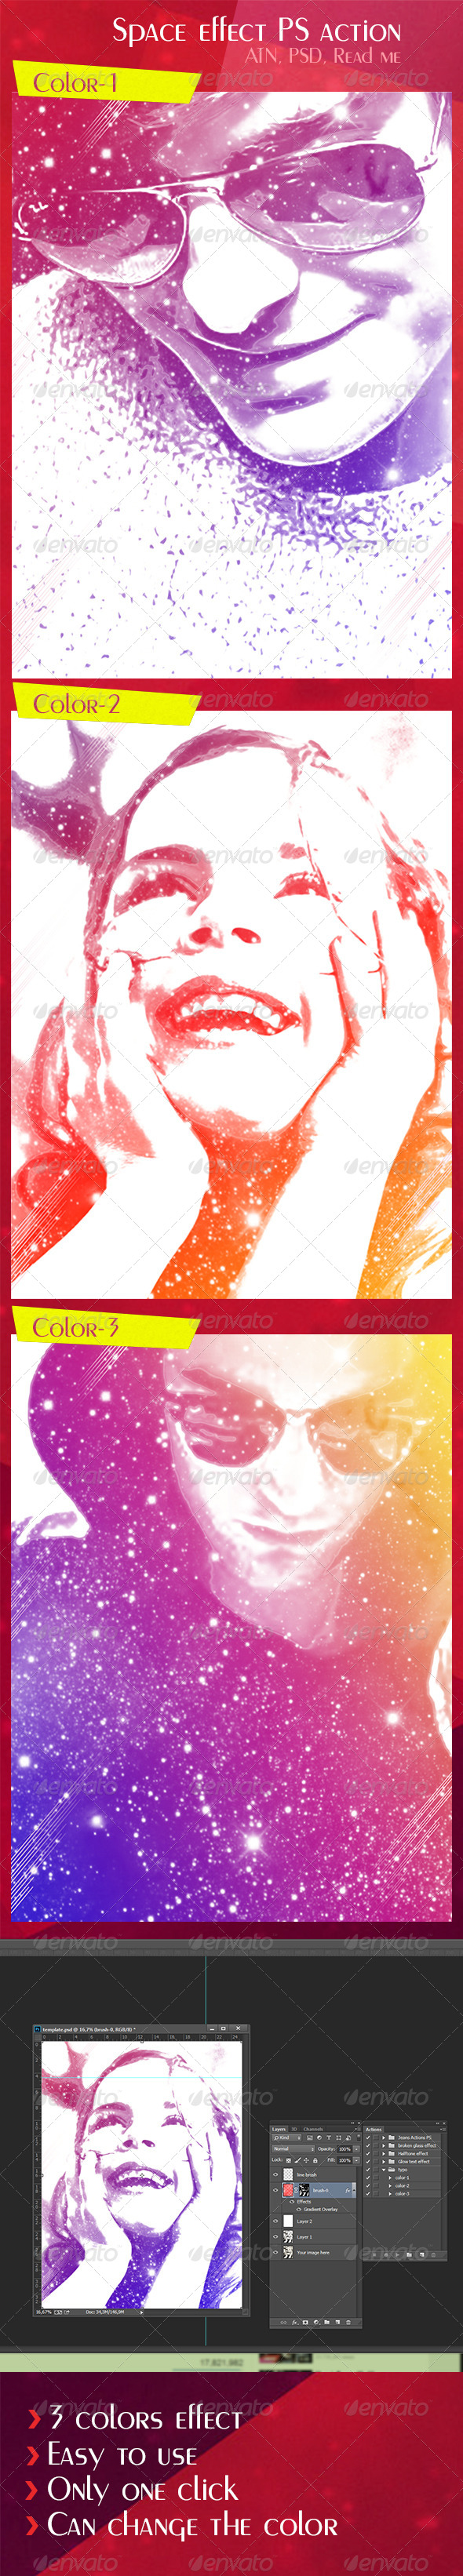 GraphicRiver Space Effect PS Action 8294965